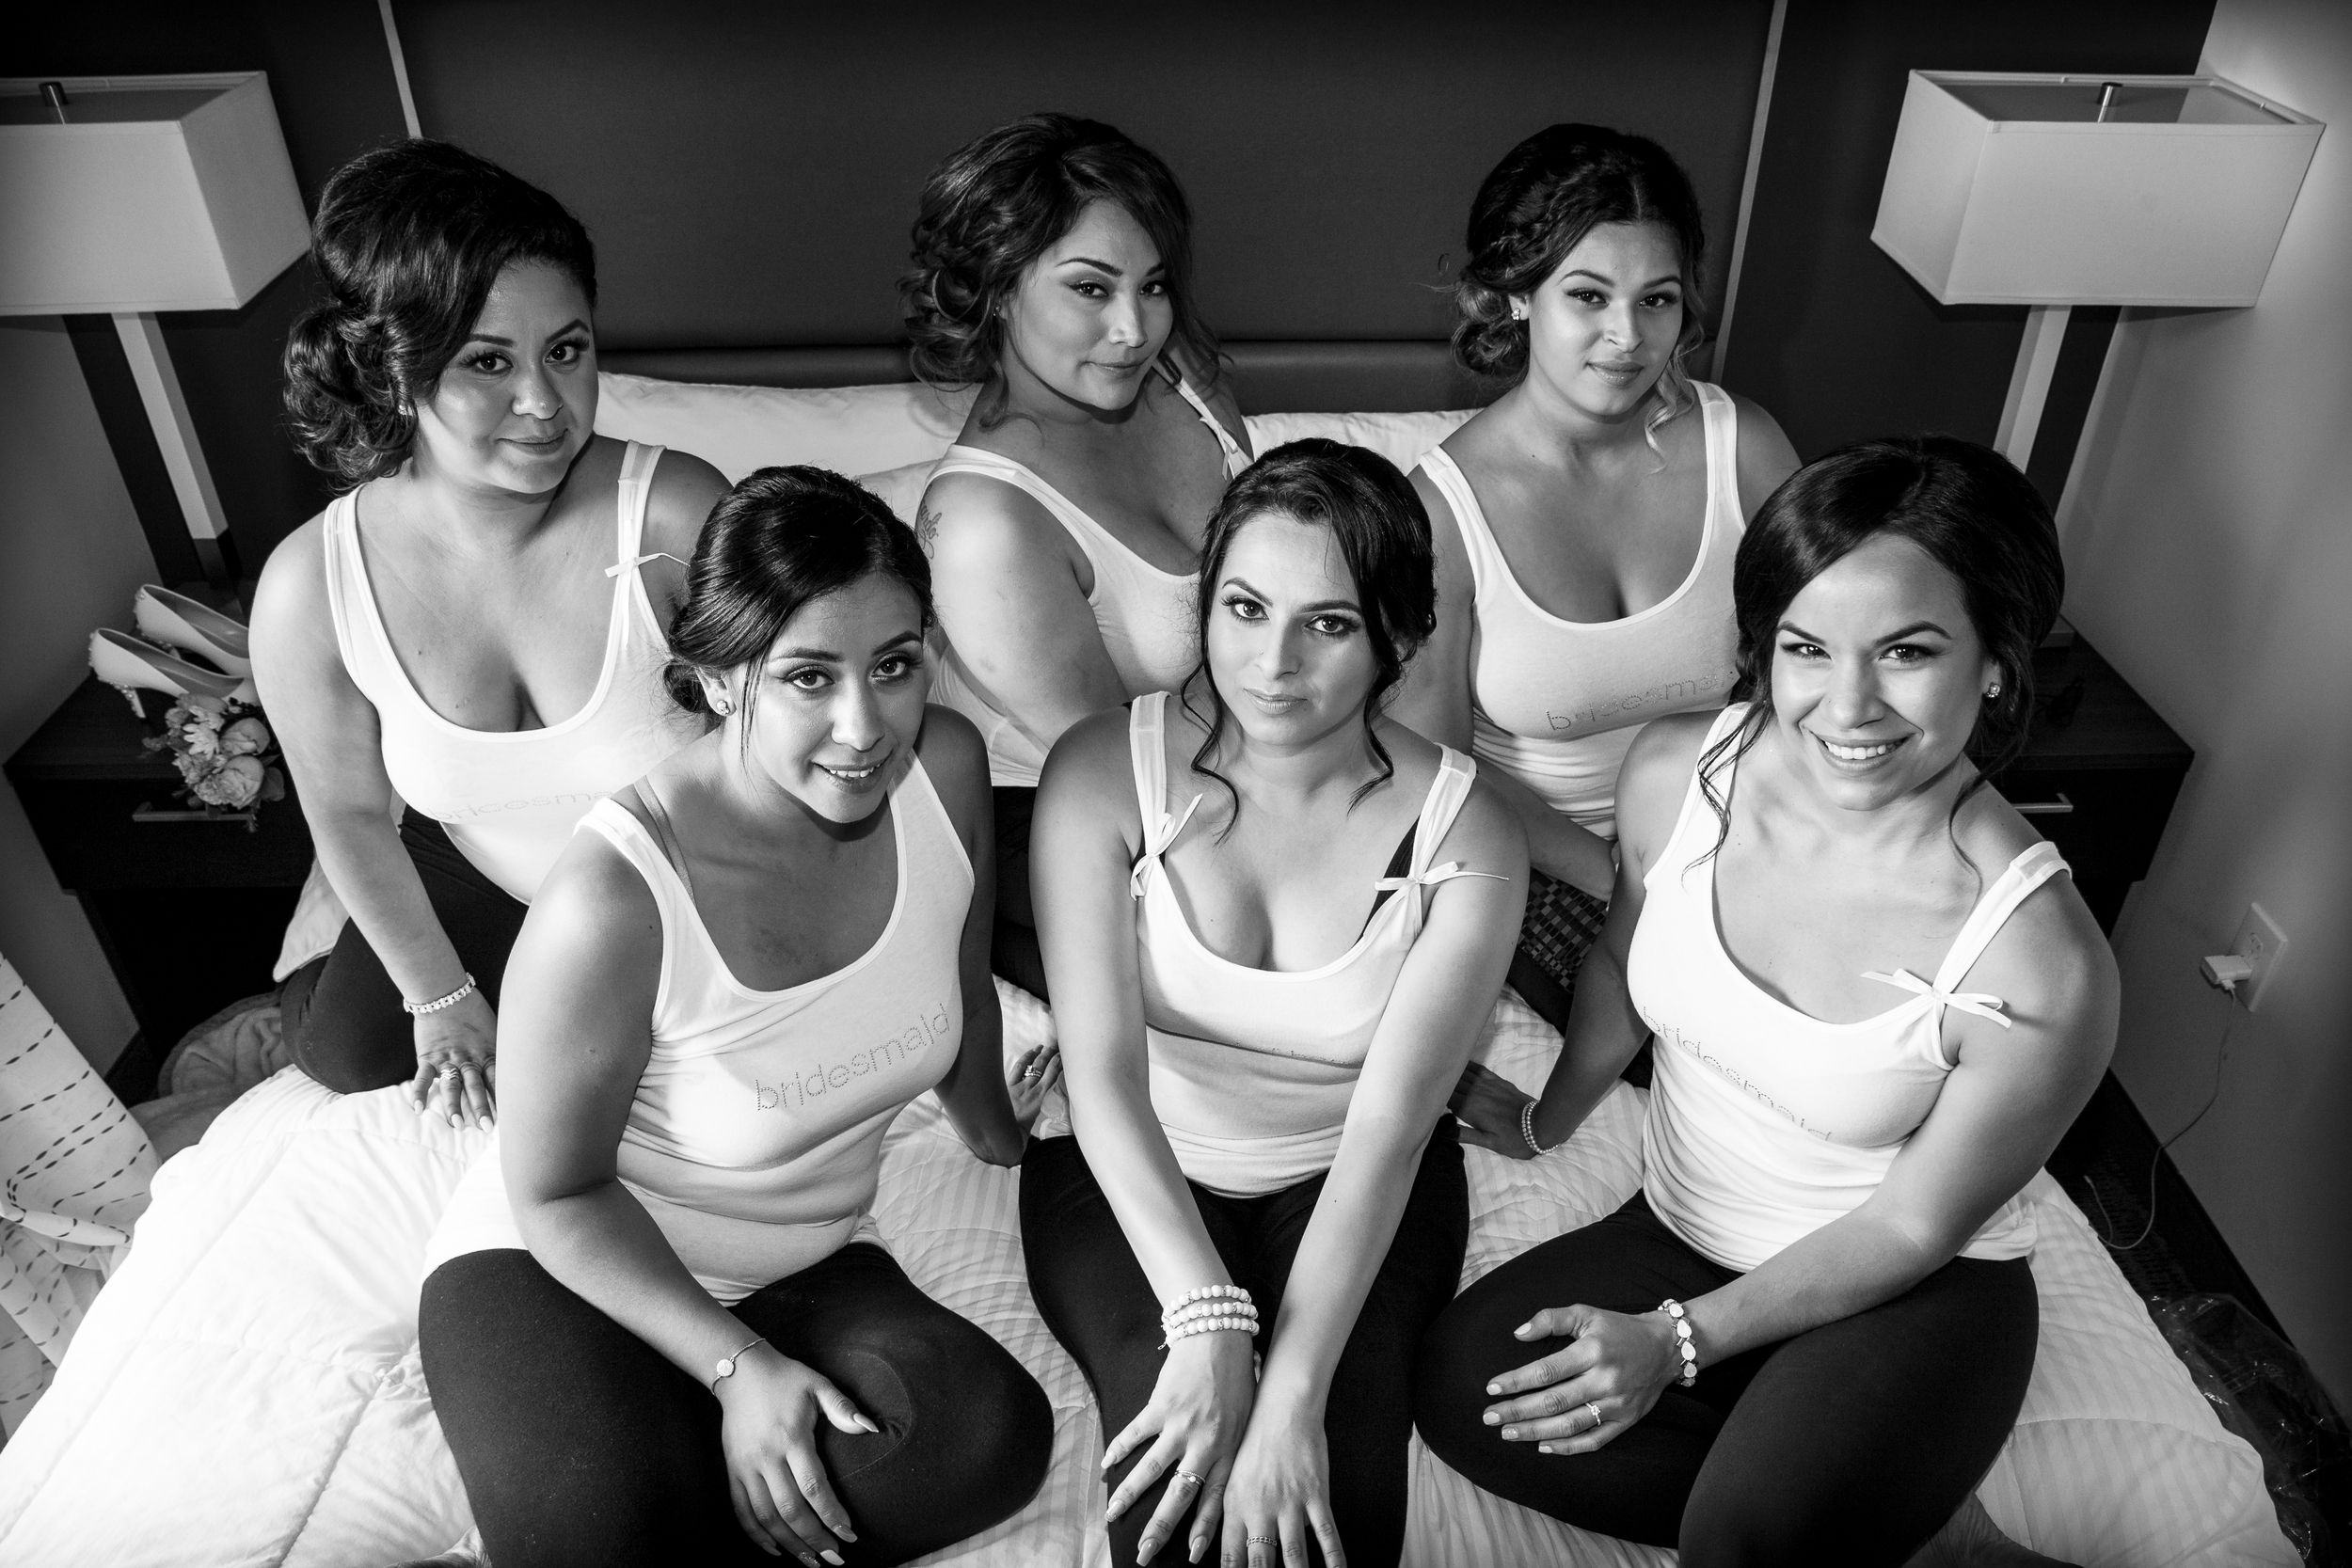 The lovely bridesmaids. Raquel, Amelia, Stephanie, Norma, Maggie, & Mayra.